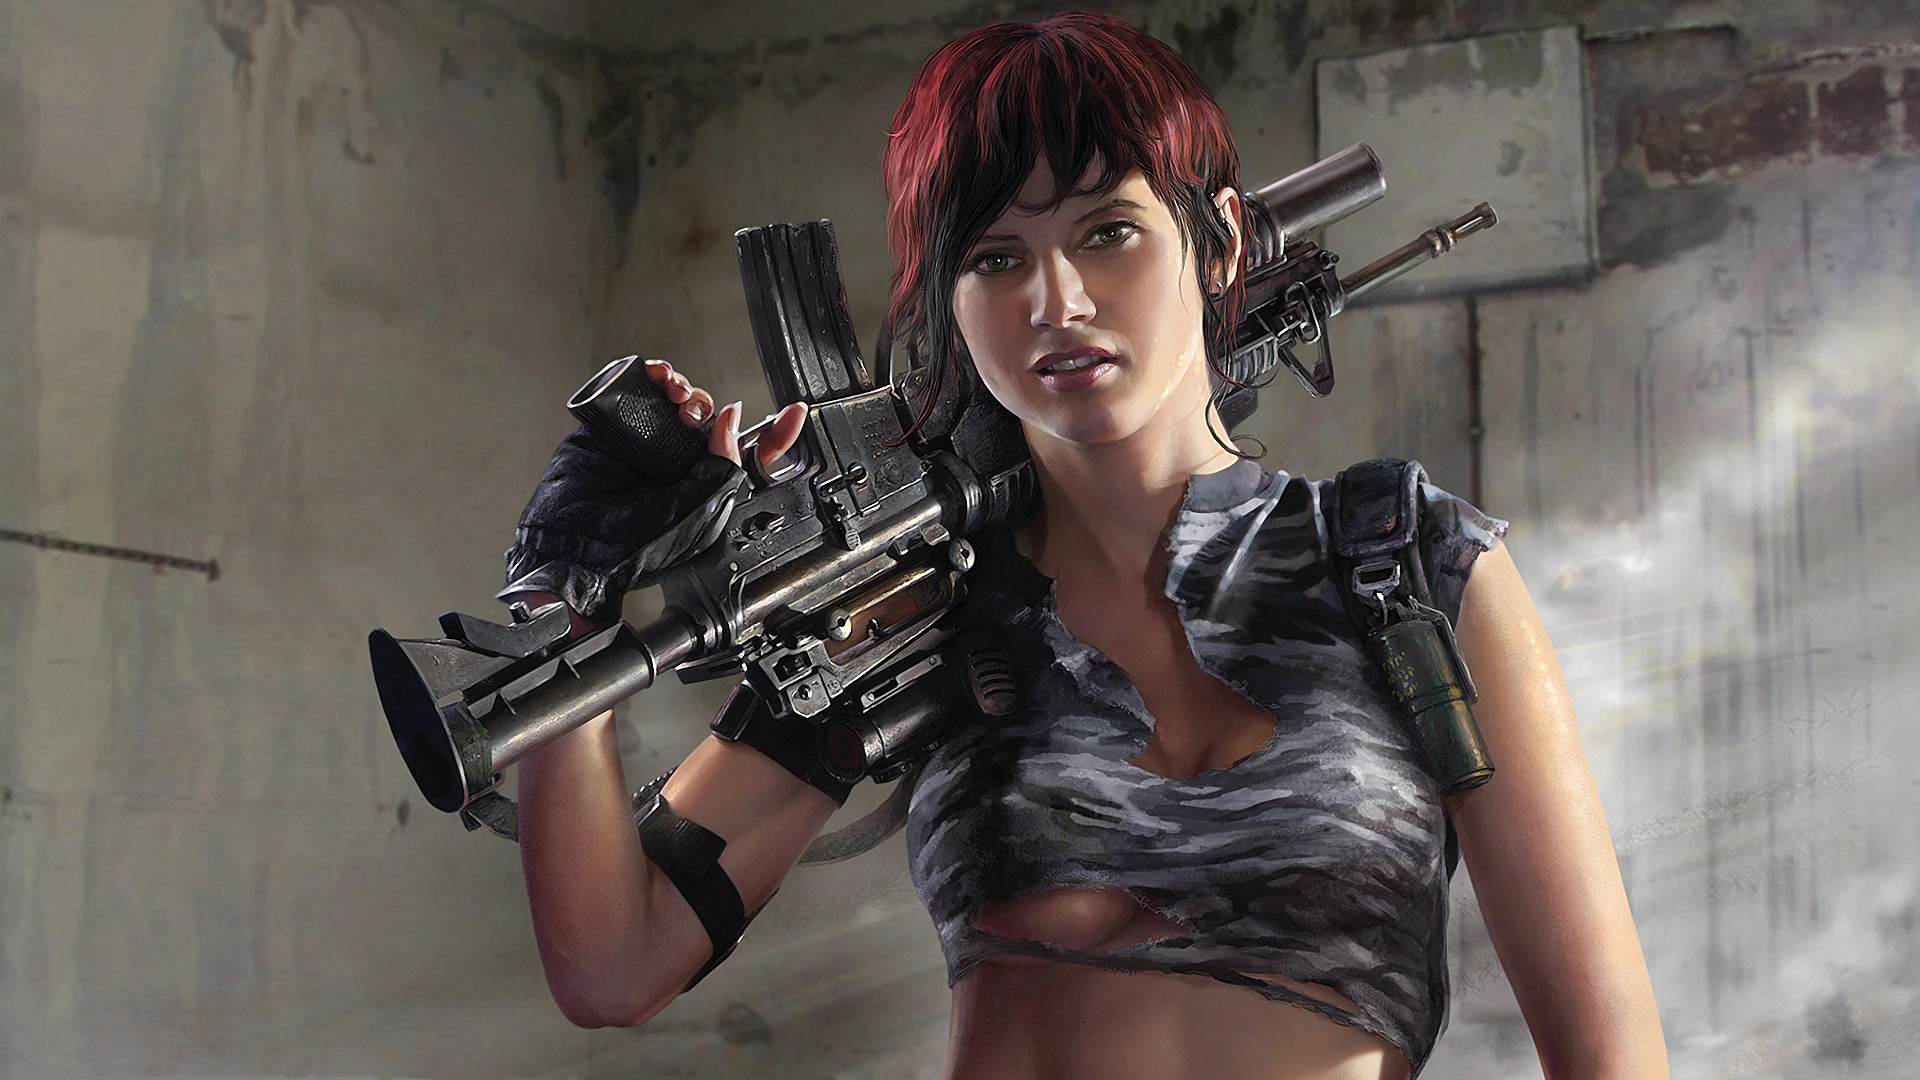 woman Rifles indoors redheads HD Wallpaper